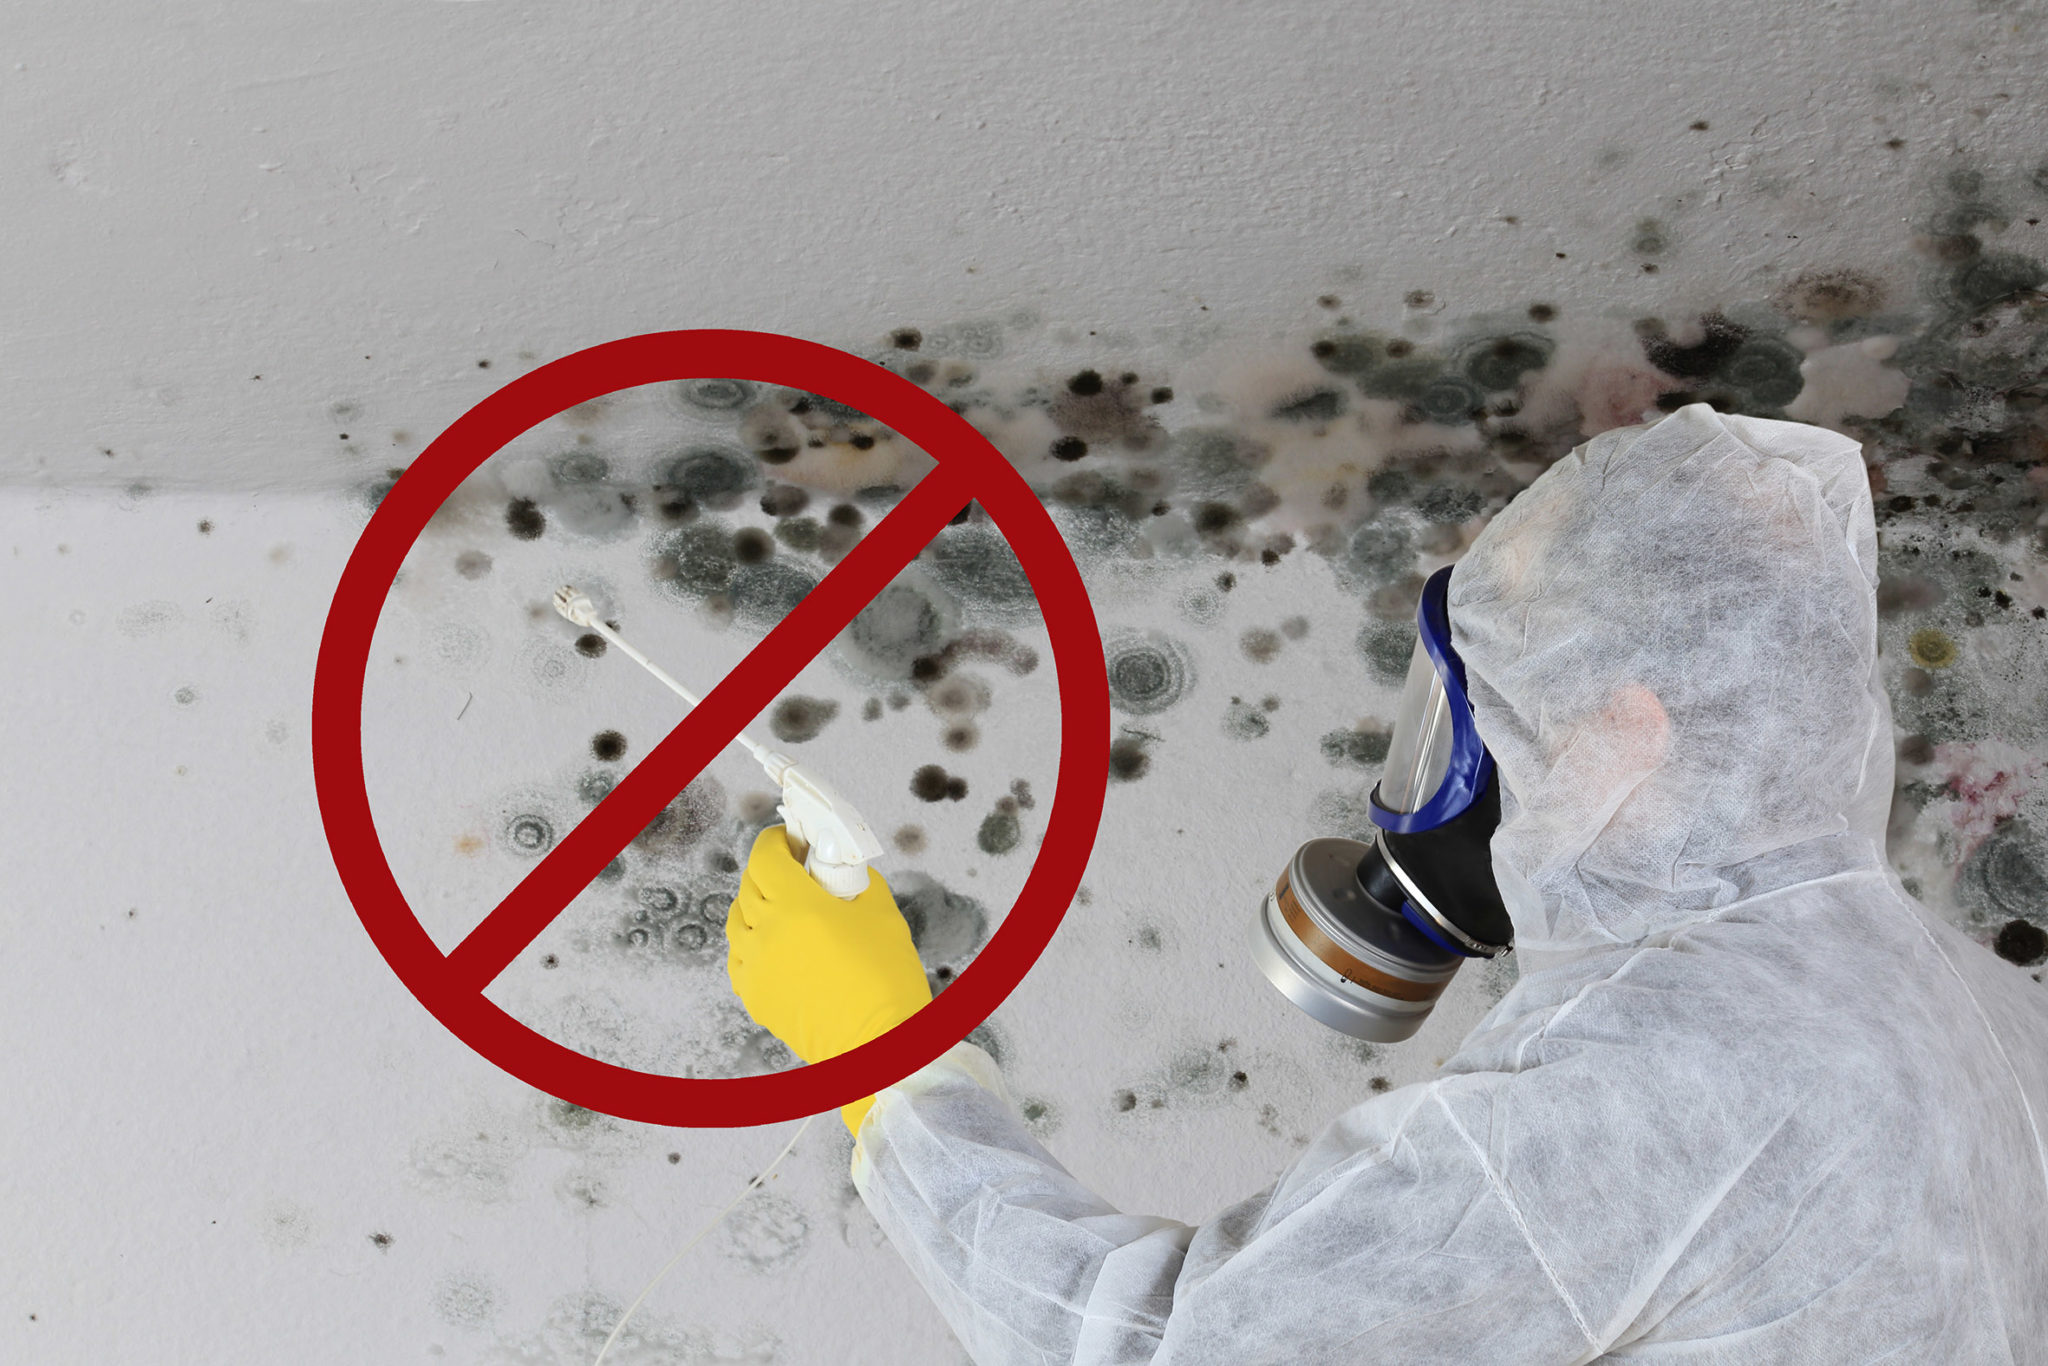 Ask an Expert: Can spraying chemicals remove mold?